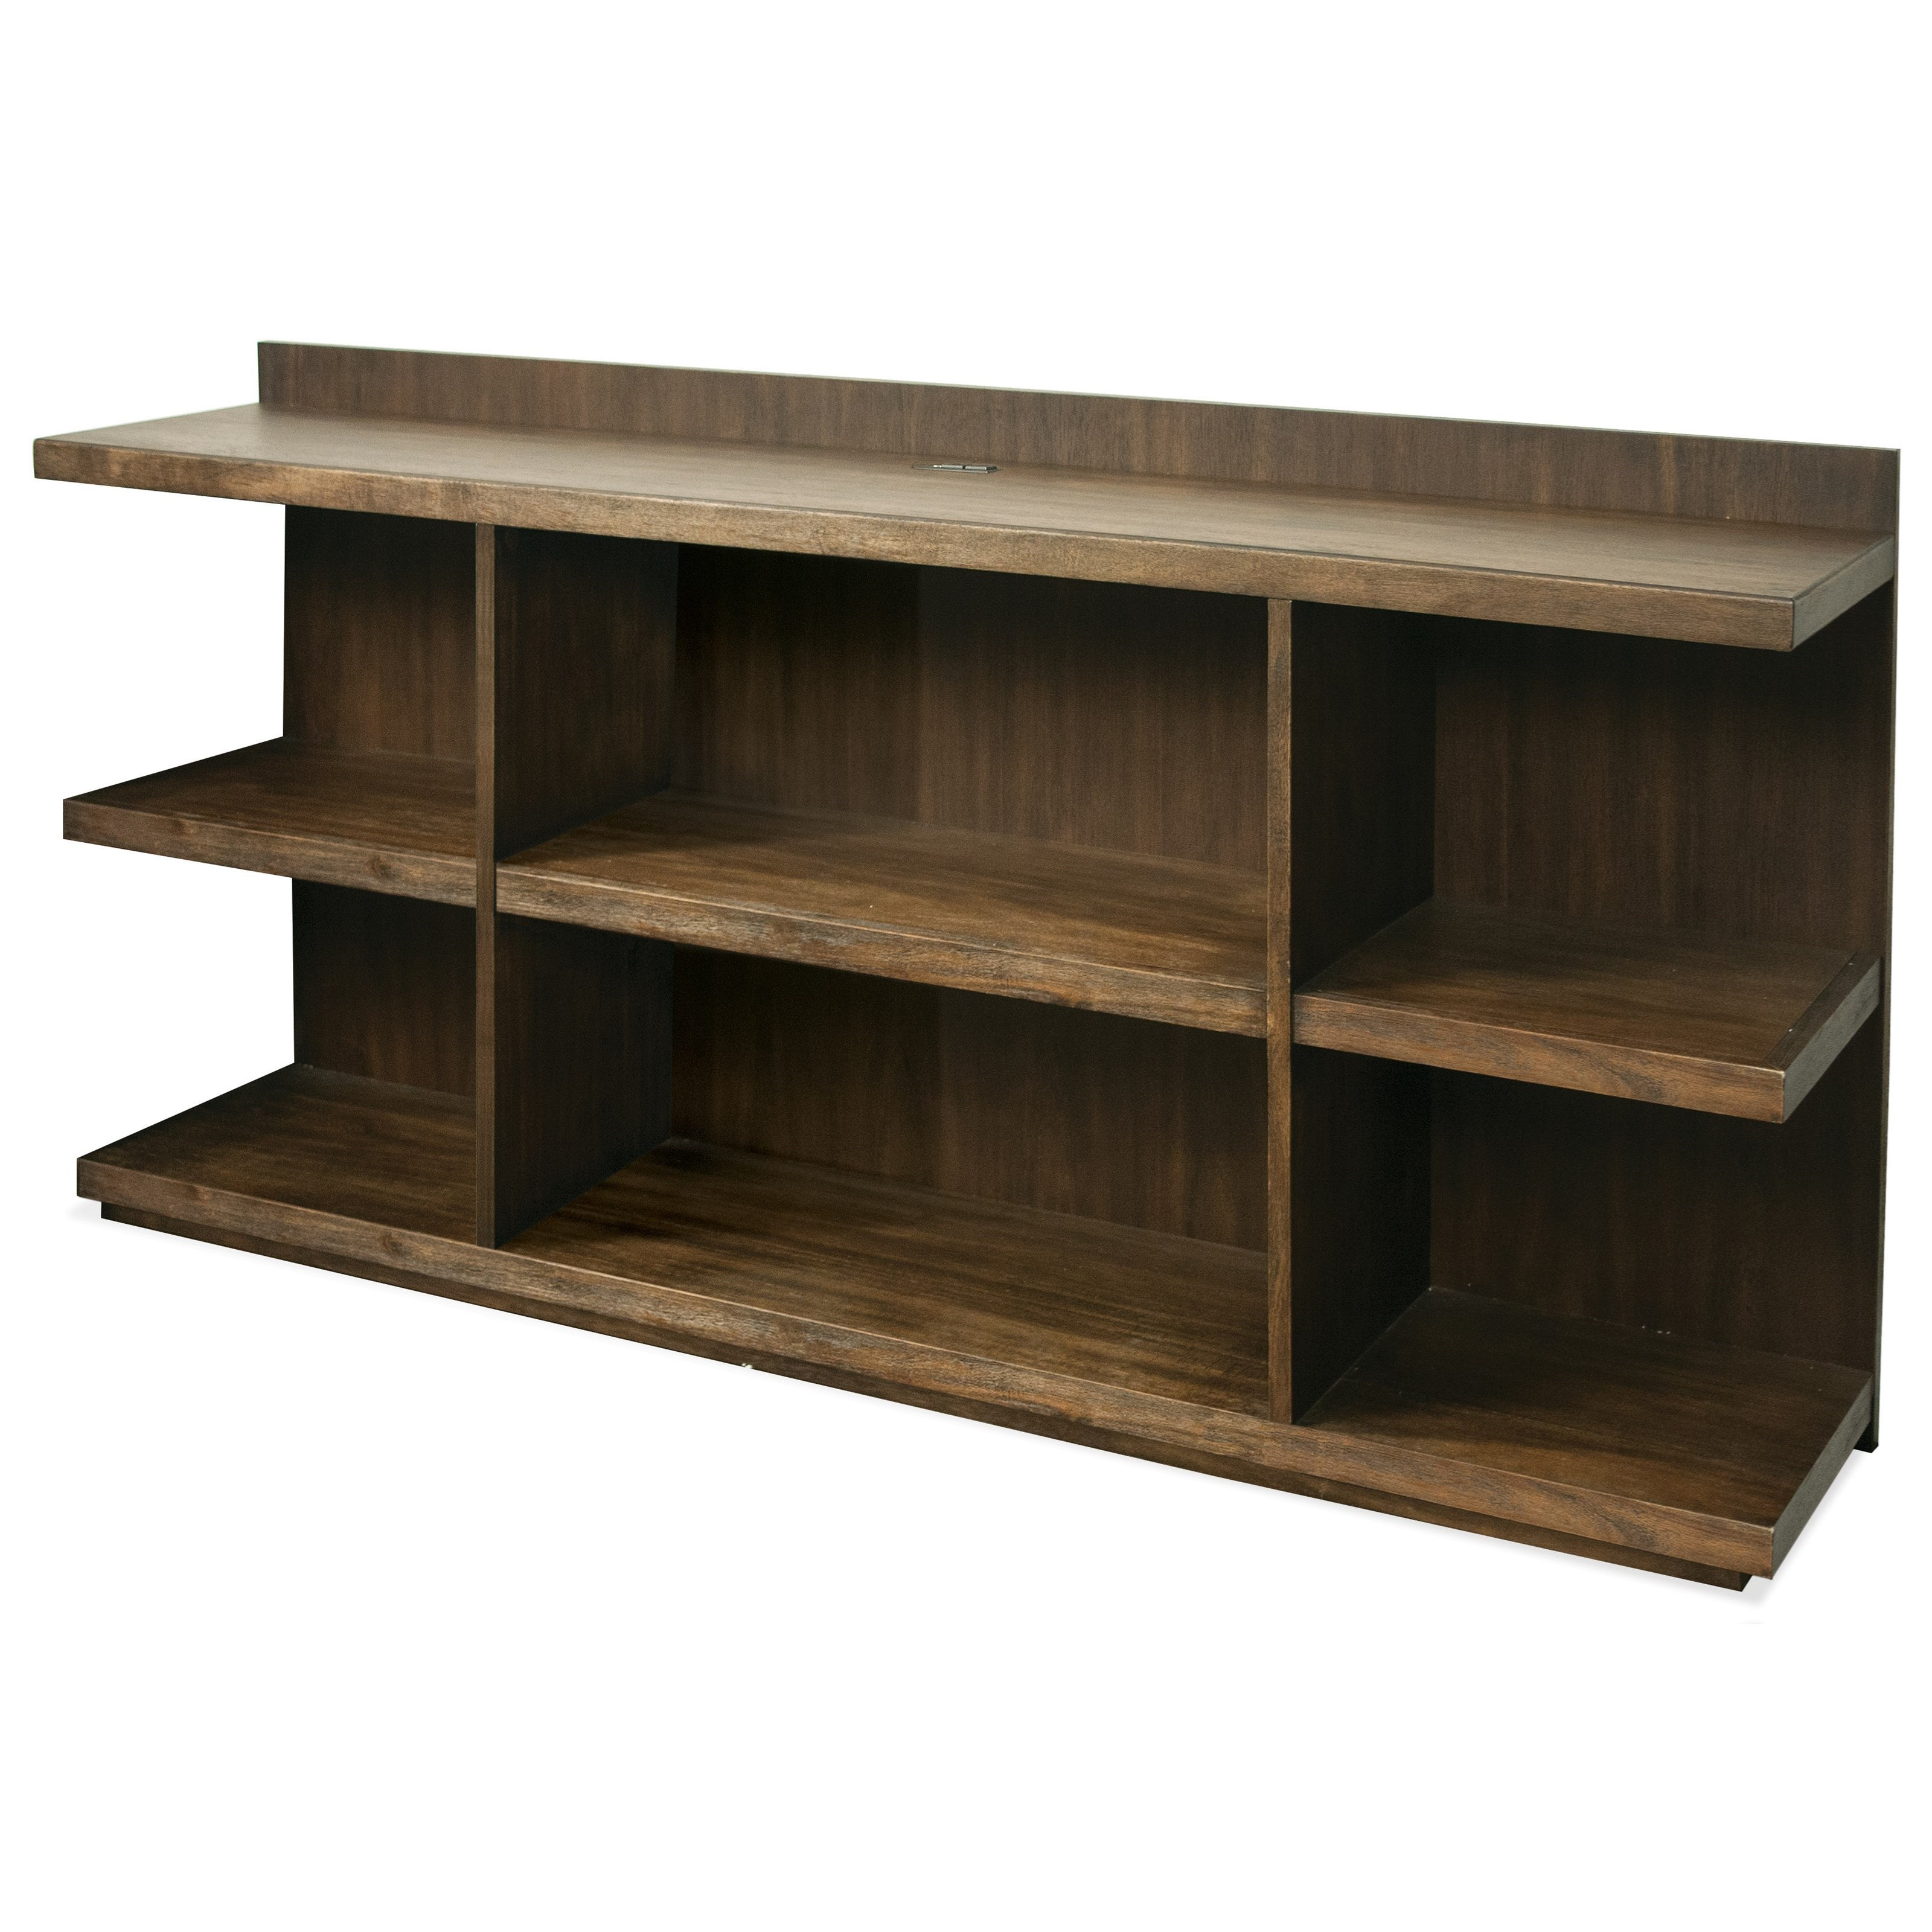 Beau Riverside Furniture Perspectives Peninsula Bookcase Desk With Outlet Bar In  Top Panel